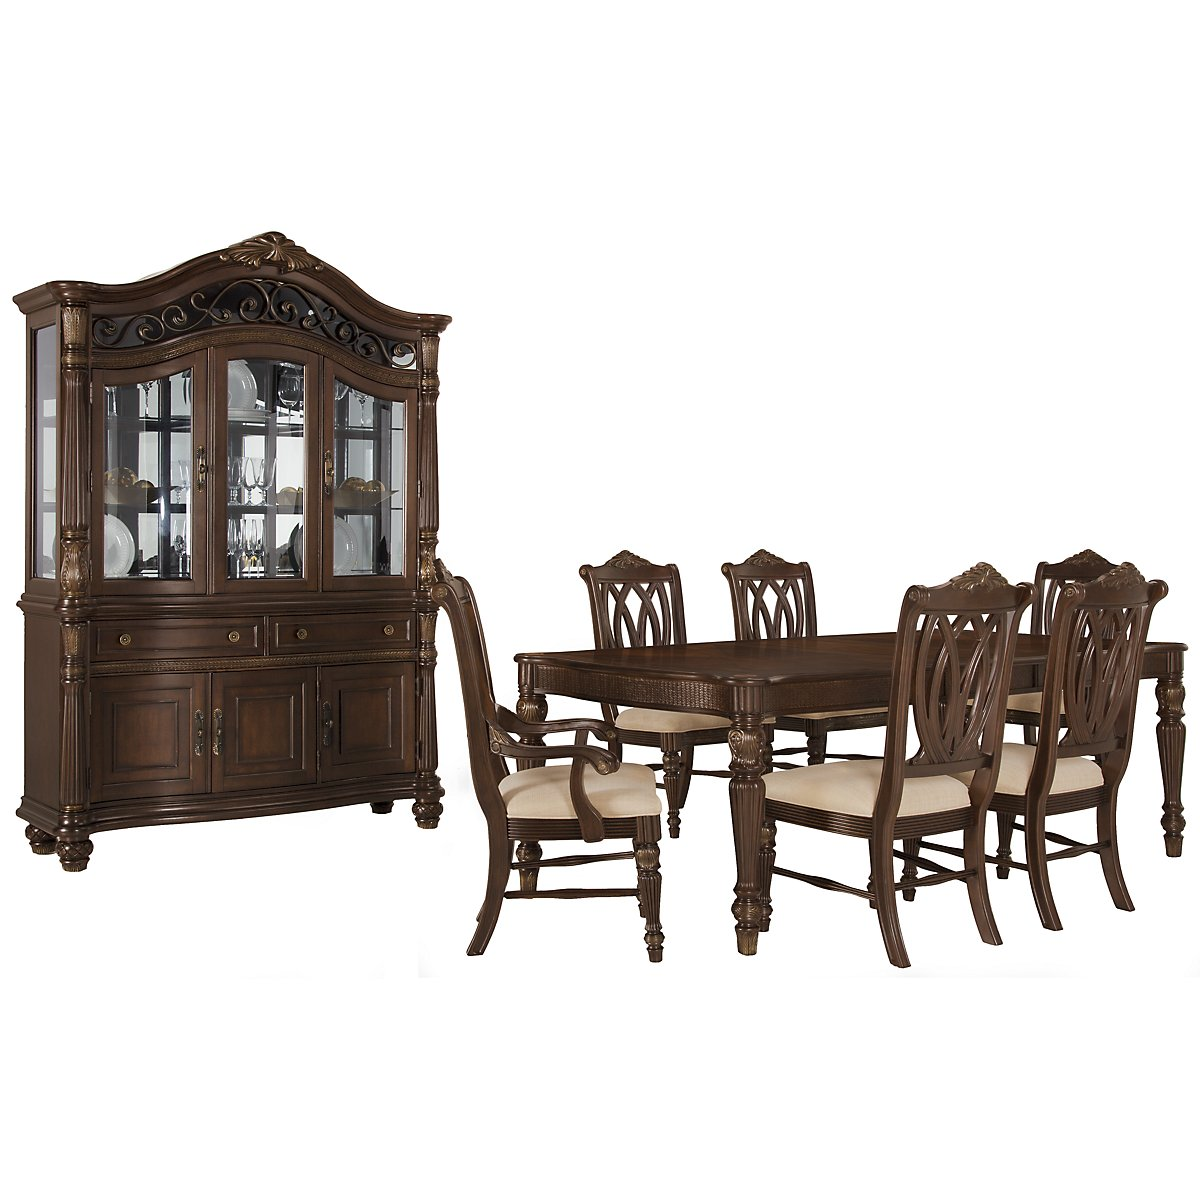 Tradewinds Dark Tone Dining Room